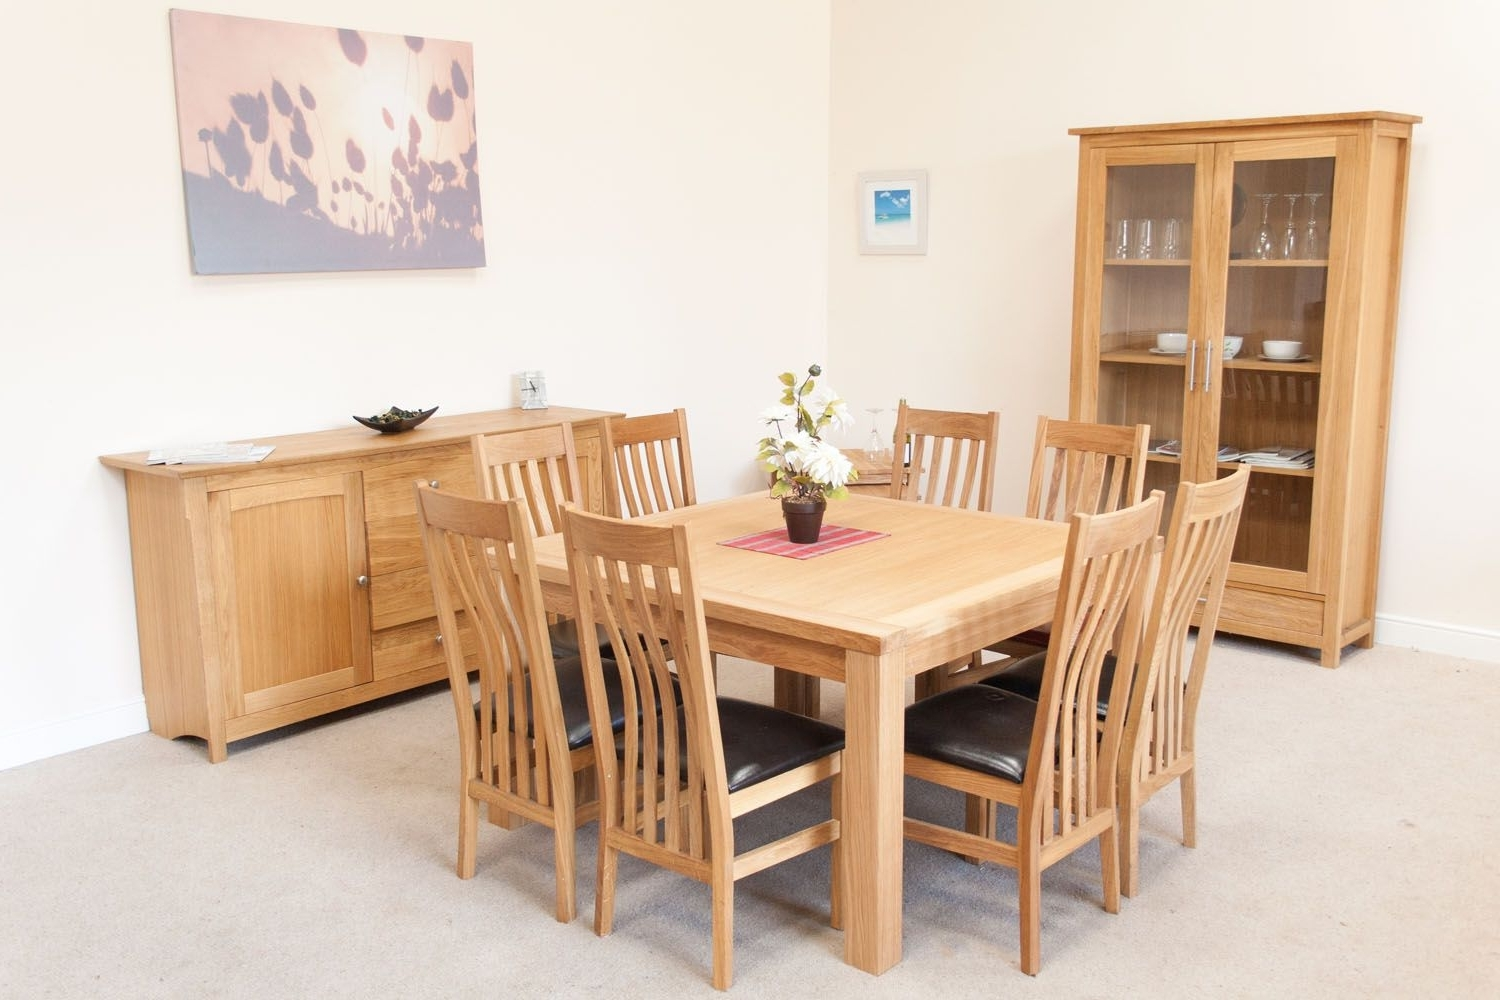 Best And Newest Minsk Large Square Oak Dining Table 8 Seater Within Oak Dining Tables 8 Chairs (View 2 of 25)